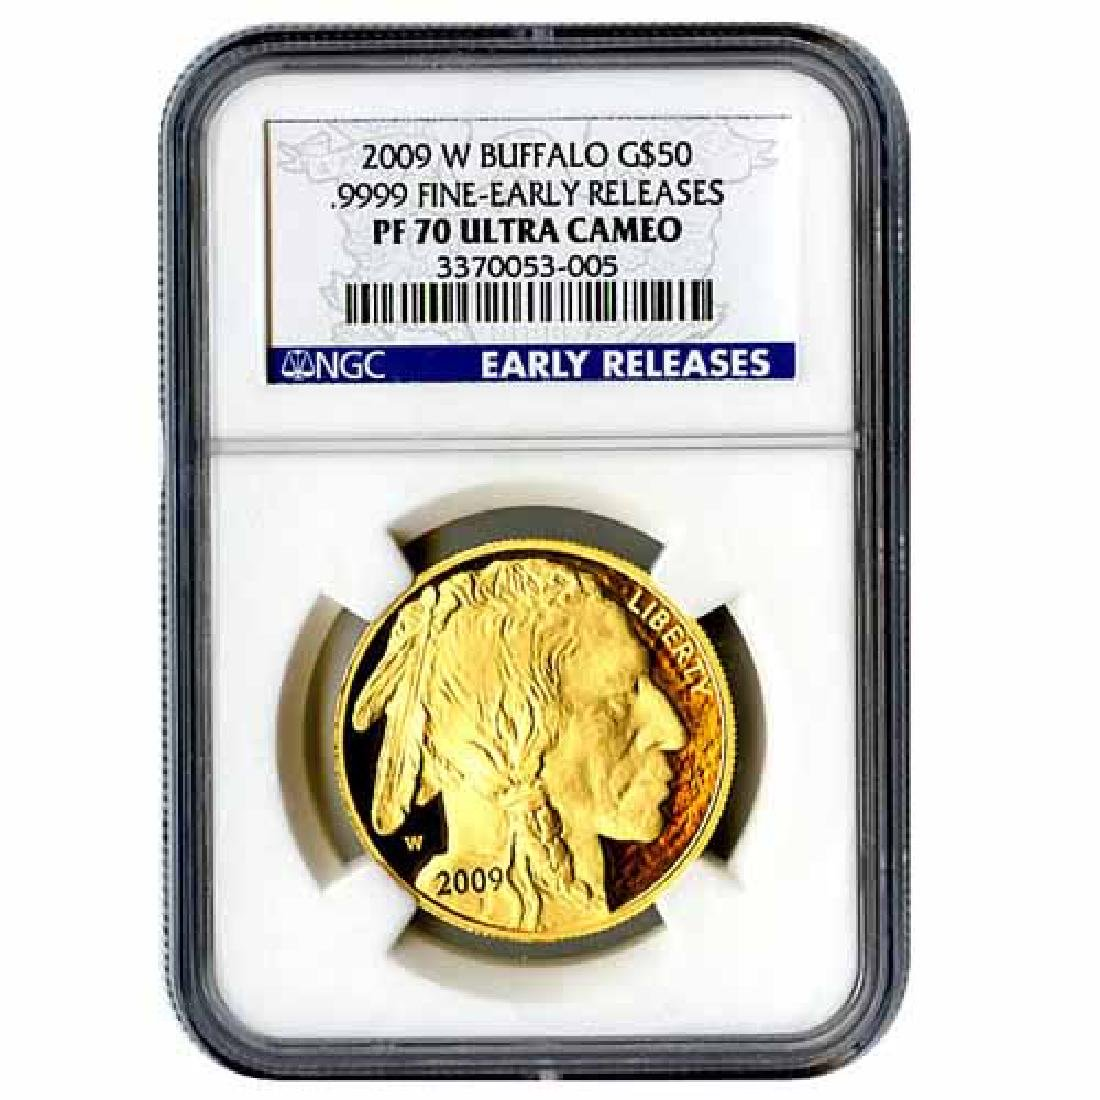 Certified Proof Buffalo Gold Coin 2009-W PF70 Early Rel